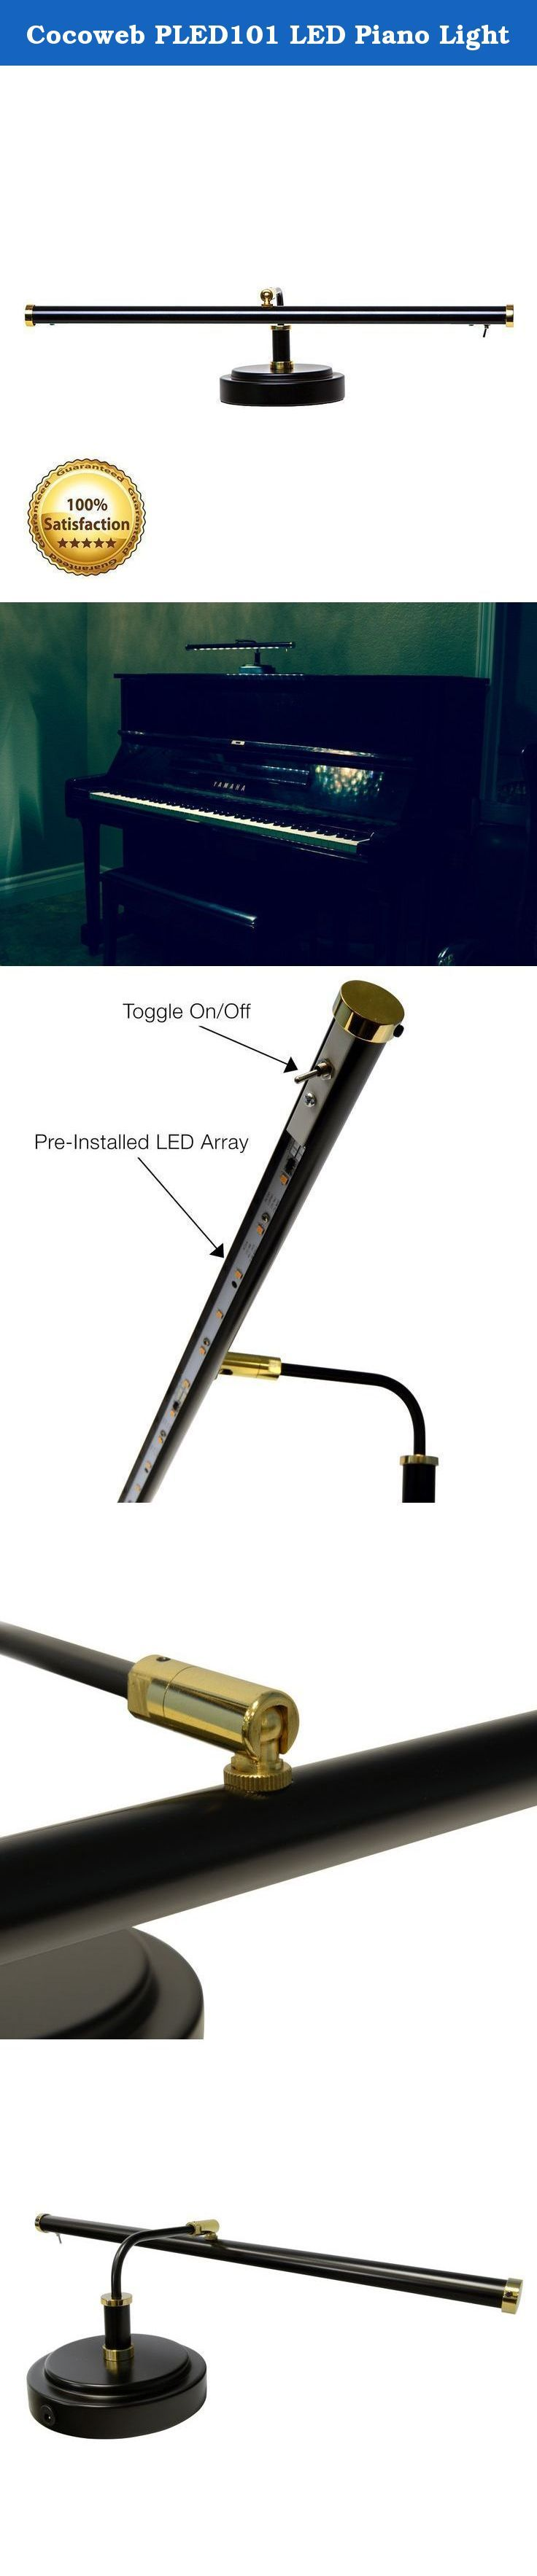 """Cocoweb PLED101 LED Piano Light. Specifically designed for upright pianos, cocoweb's PLED101 piano lamp is an elegant answer to modern piano lighting. This 19"""" lamp displays the classic craftsmanship of a time-honored traditional piano lighting, as alive today as the love for music. And Cocoweb improves upon classic design with the latest LED lighting technology, creating one of the most advanced lamps on the market today. Elegant style each Cocoweb piano lamp is rolled, polished, buffed..."""